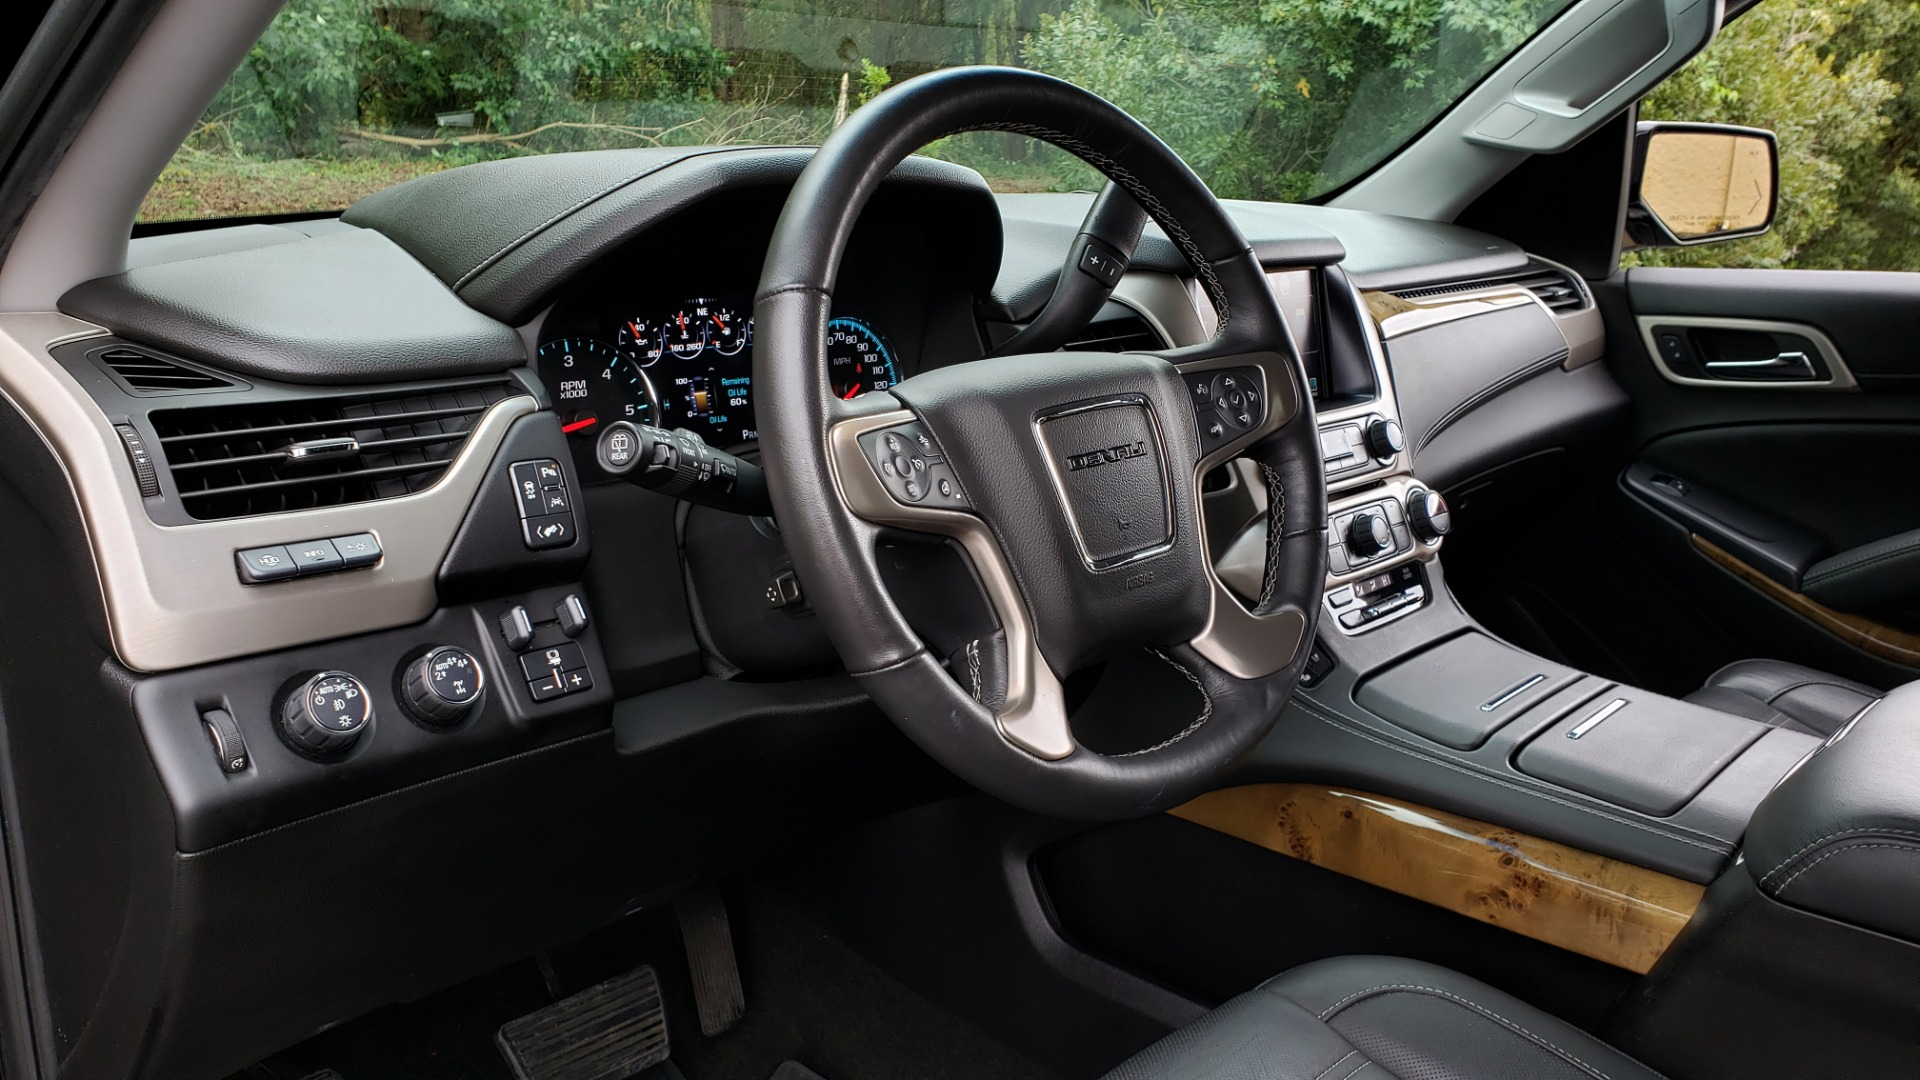 Used 2017 GMC YUKON XL DENALI 4WD / NAV / SUNROOF / ENT / 3-ROWS / BOSE / REARVIEW for sale $48,695 at Formula Imports in Charlotte NC 28227 40